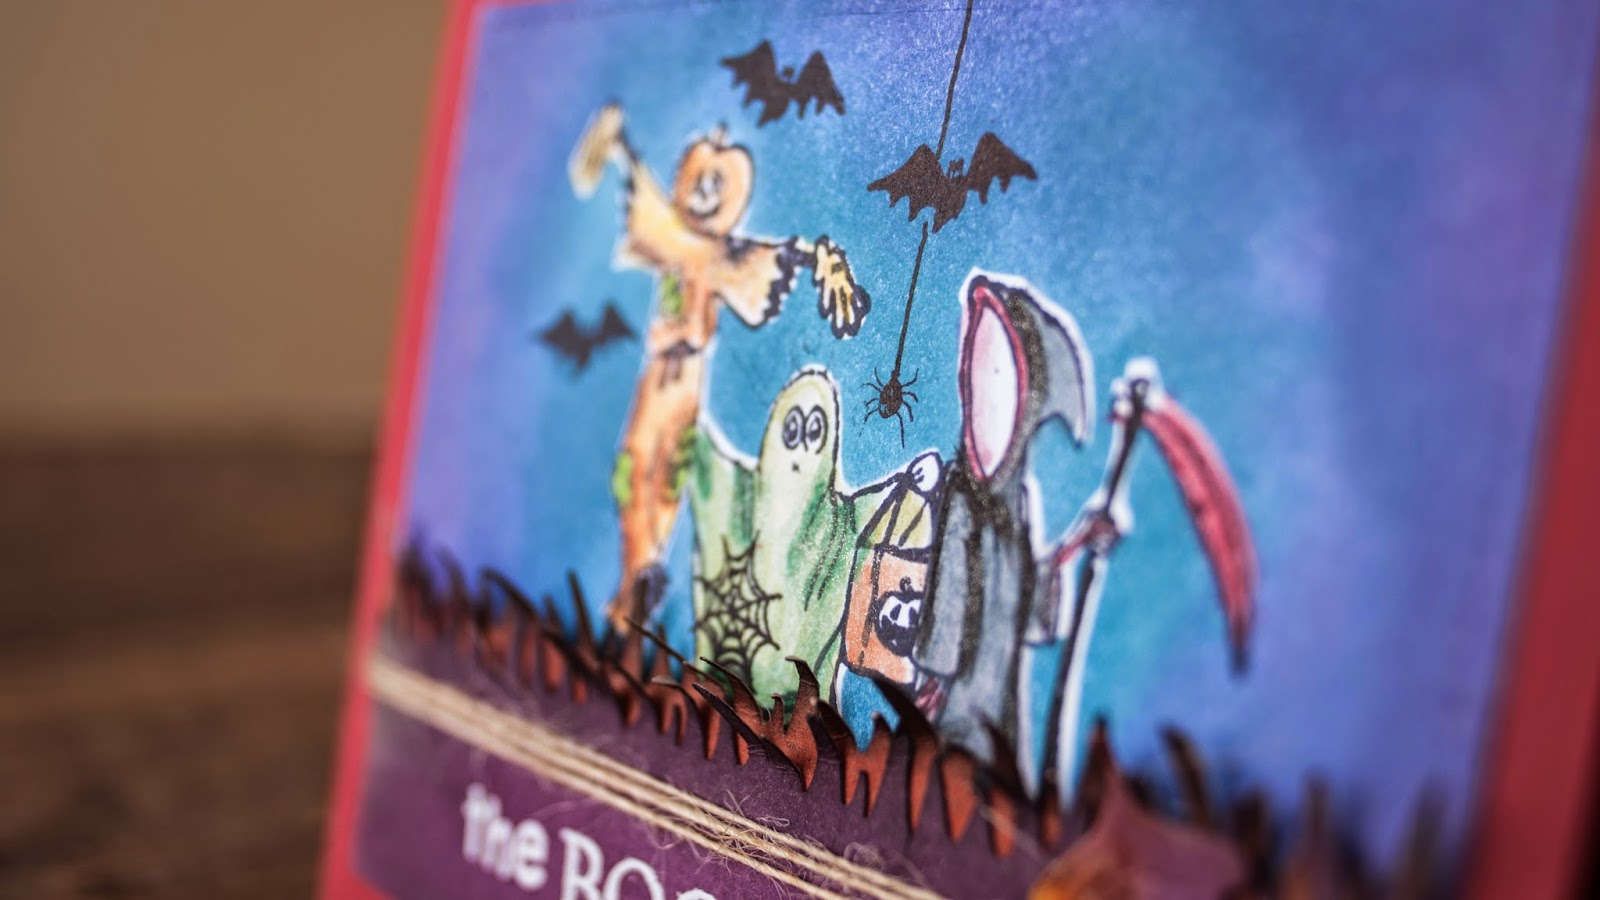 Halloween card #2 2014- the boo crew - tree friends out trick and treating - side